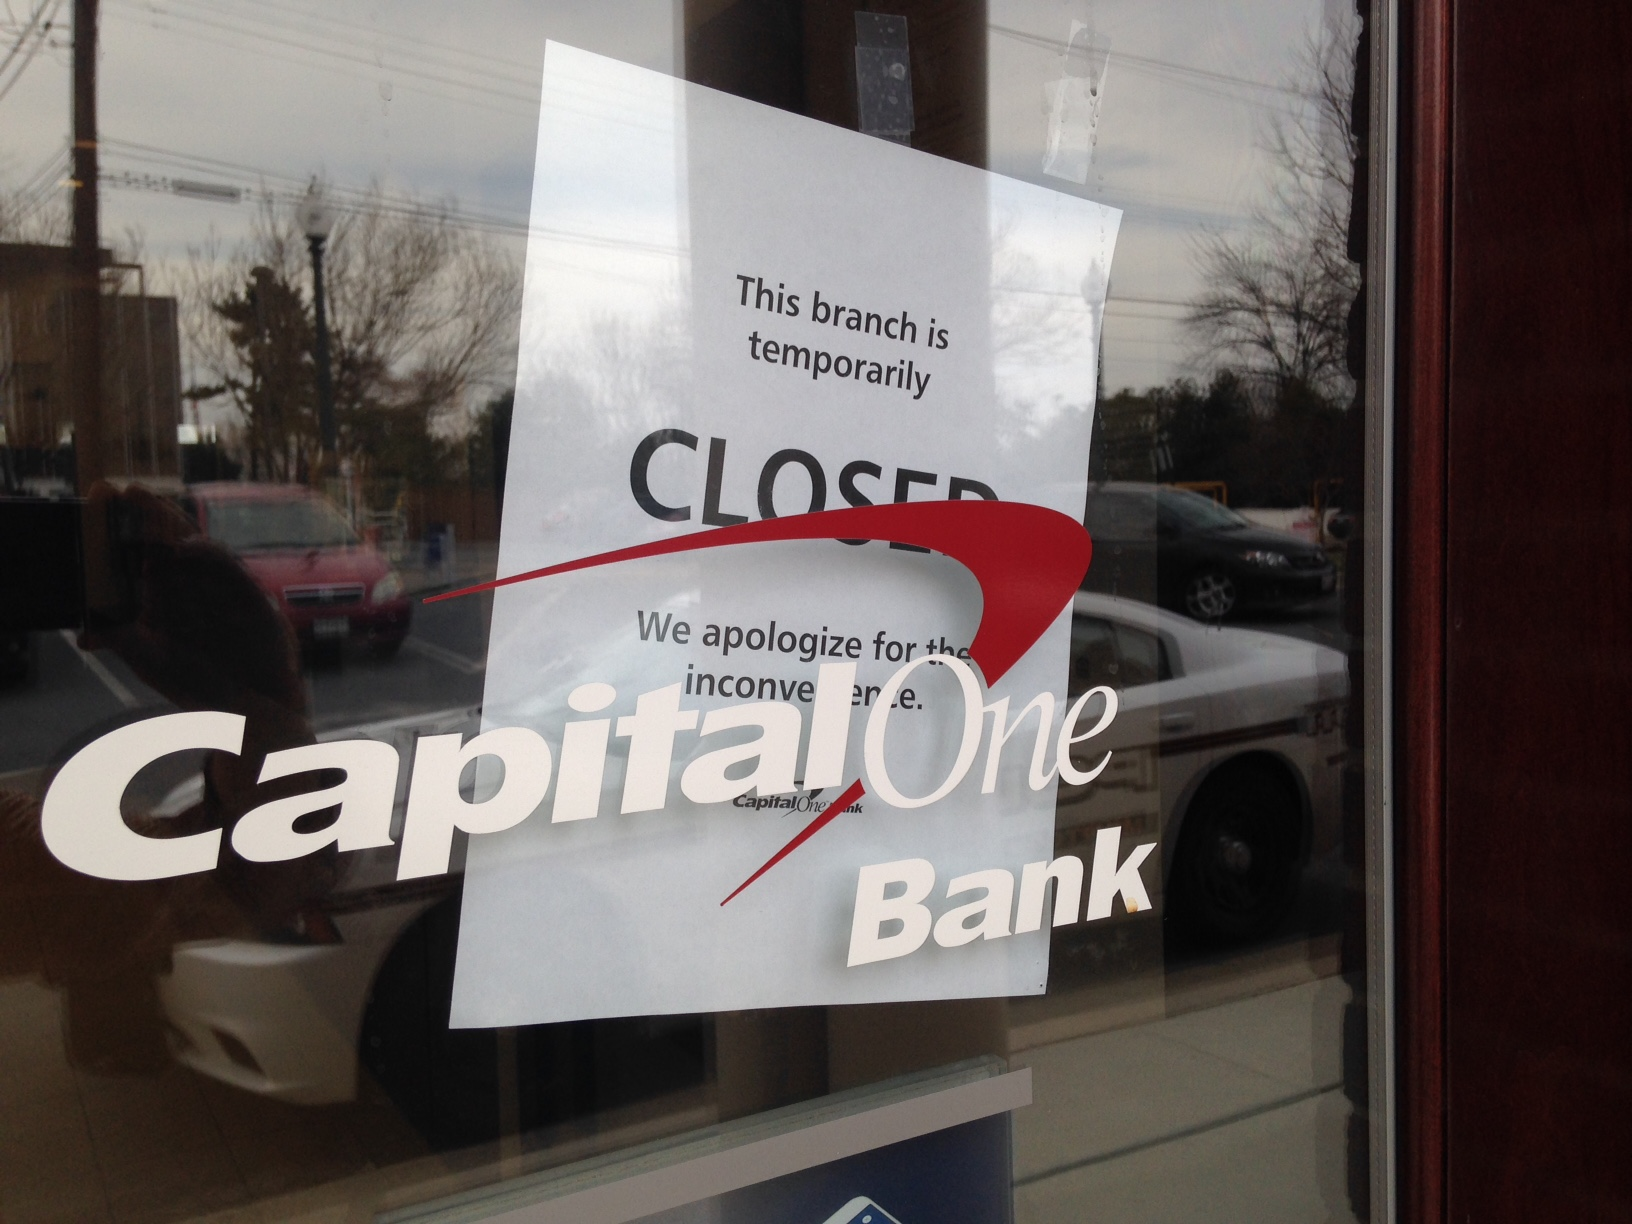 Arrest made after 3 Montgomery Co. banks robbed 15 minutes apart